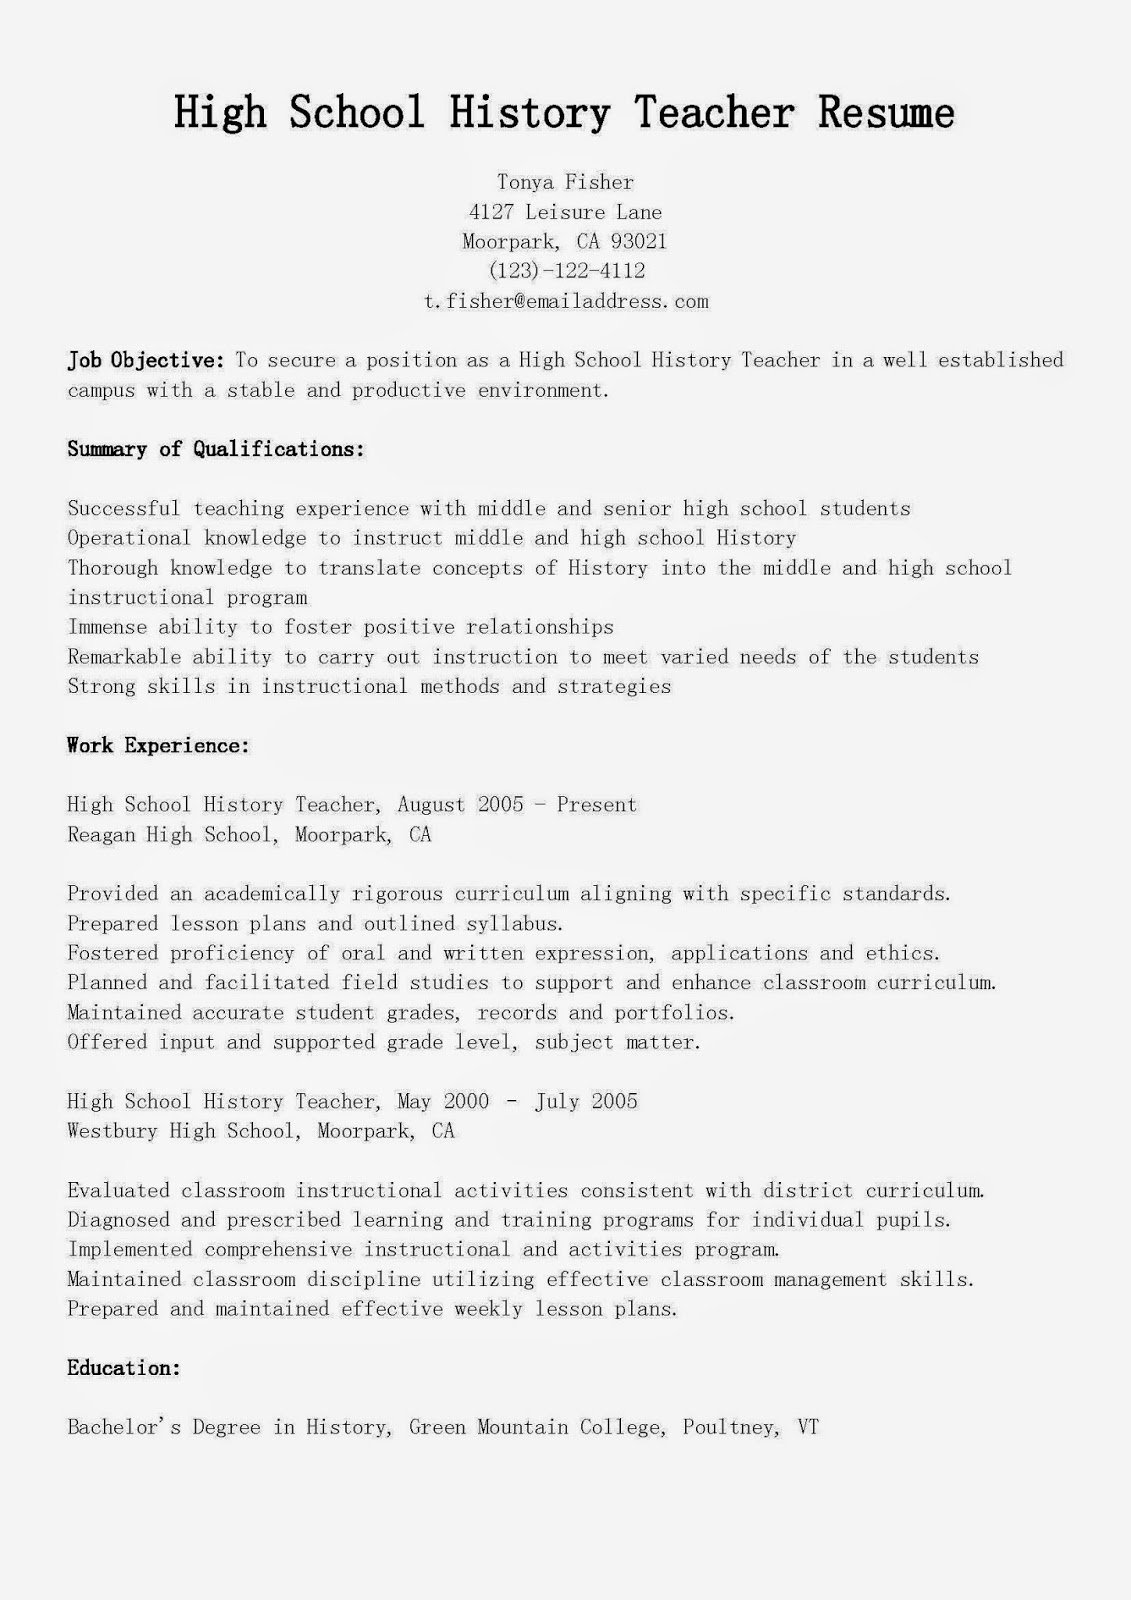 High School Teacher Resume Best Of Resume Samples High School History Teacher Resume Sample